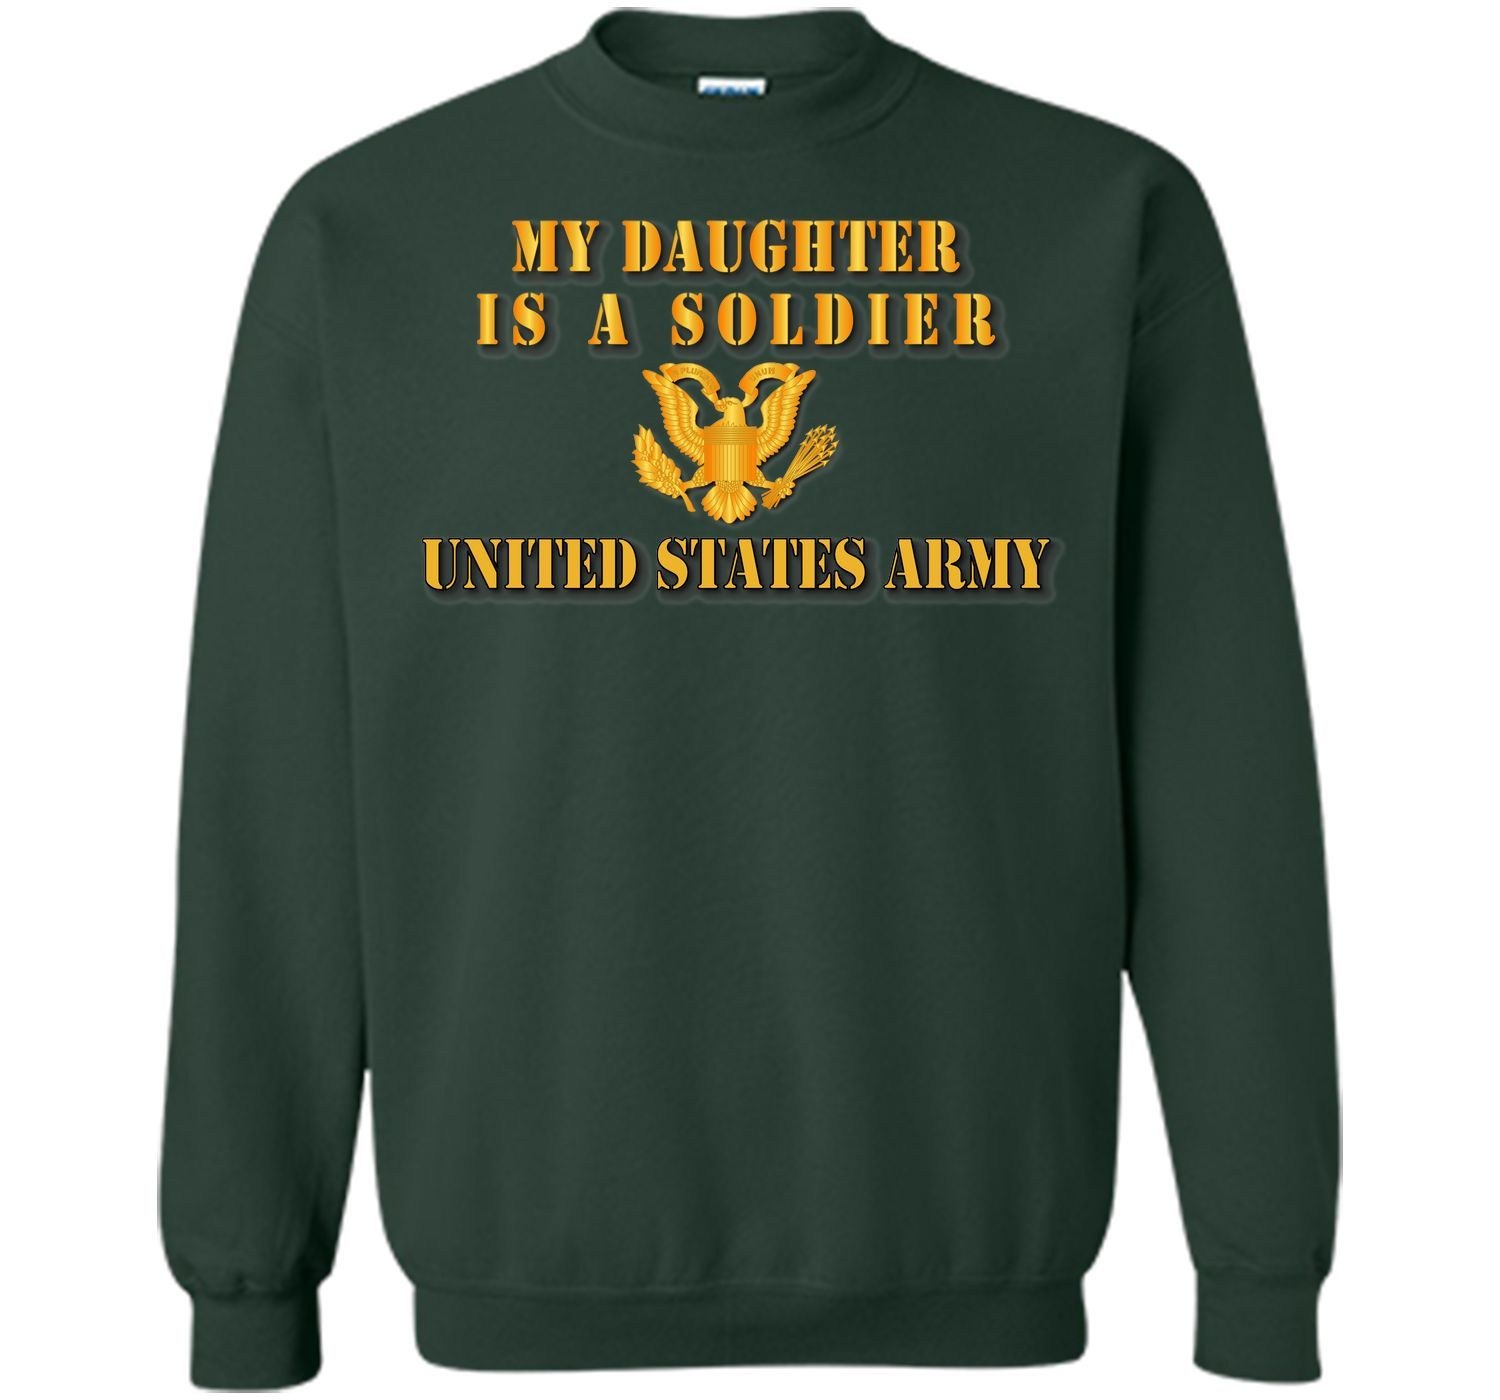 My Daughter is a Soldier T-Shirt